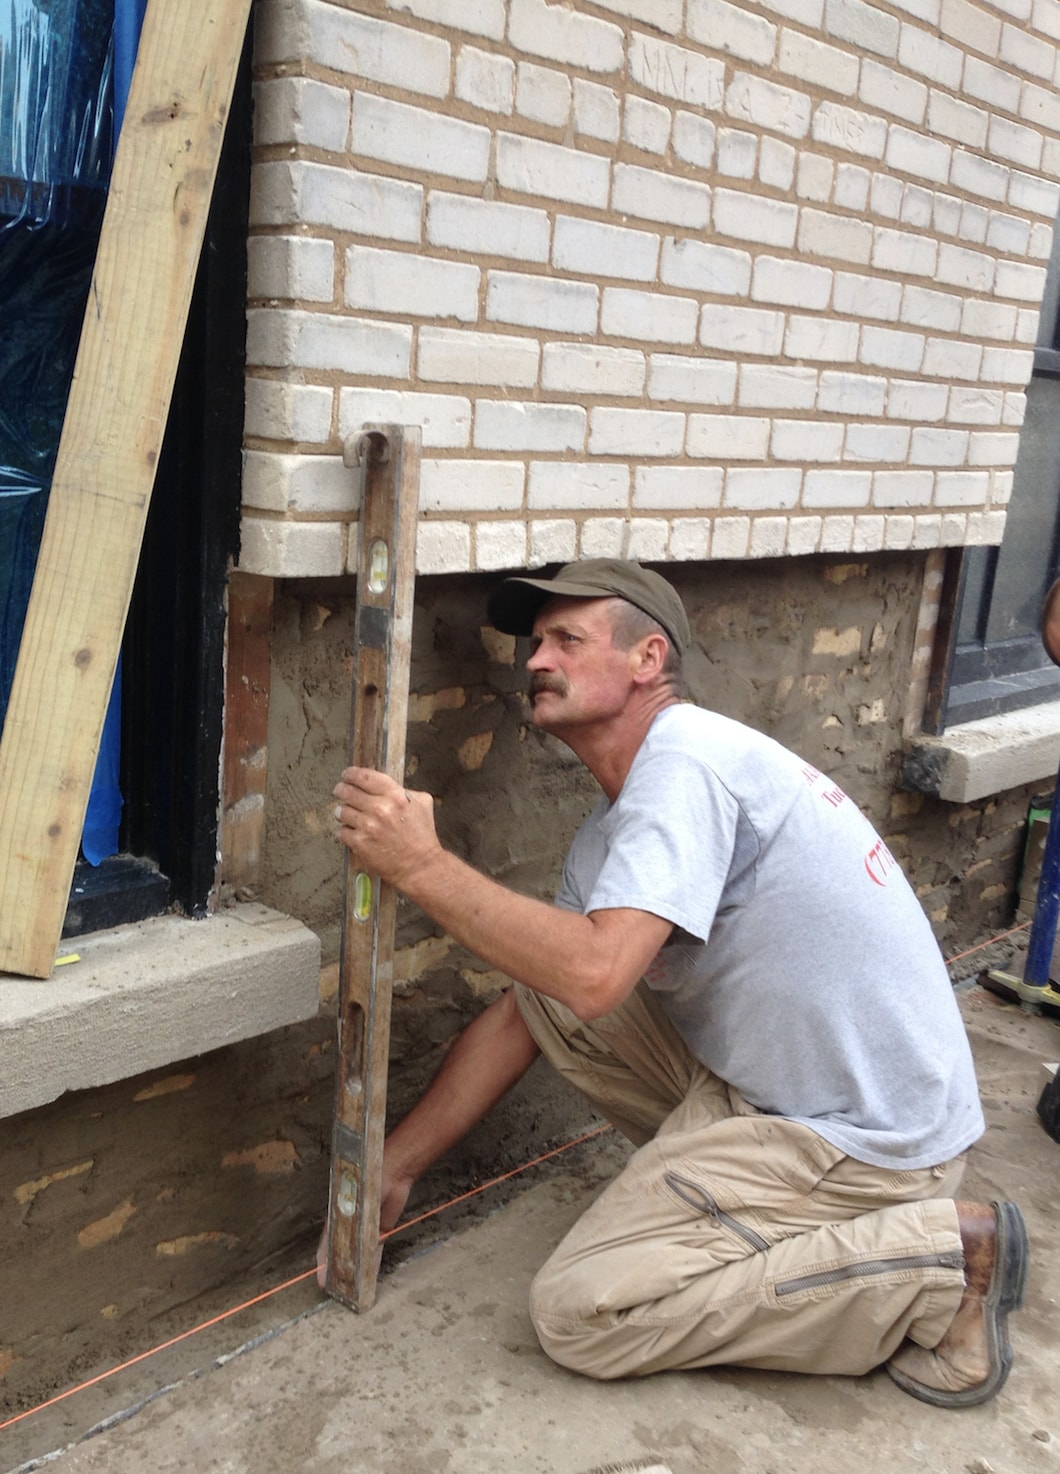 A licensed mason checking for plumb and level